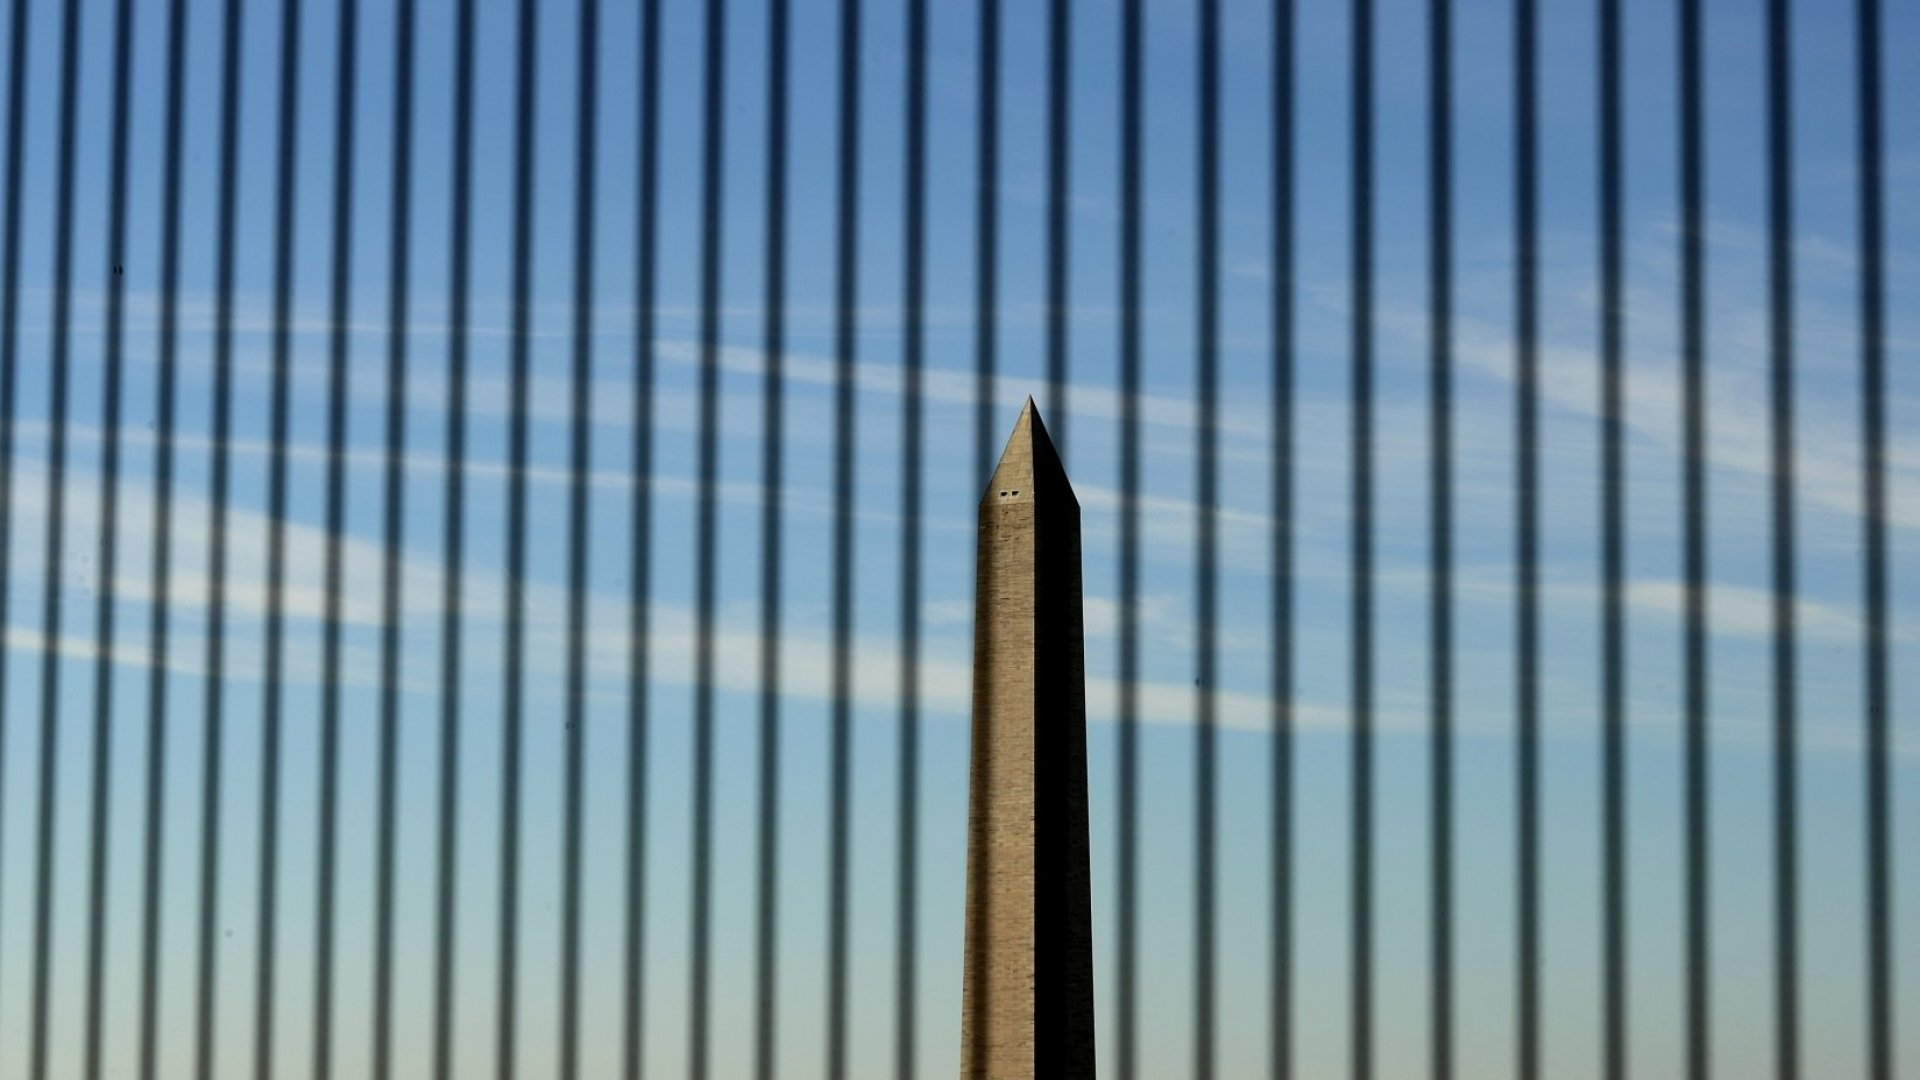 3 Ways a Prolonged Government Shutdown Could Affect U.S. Businesses